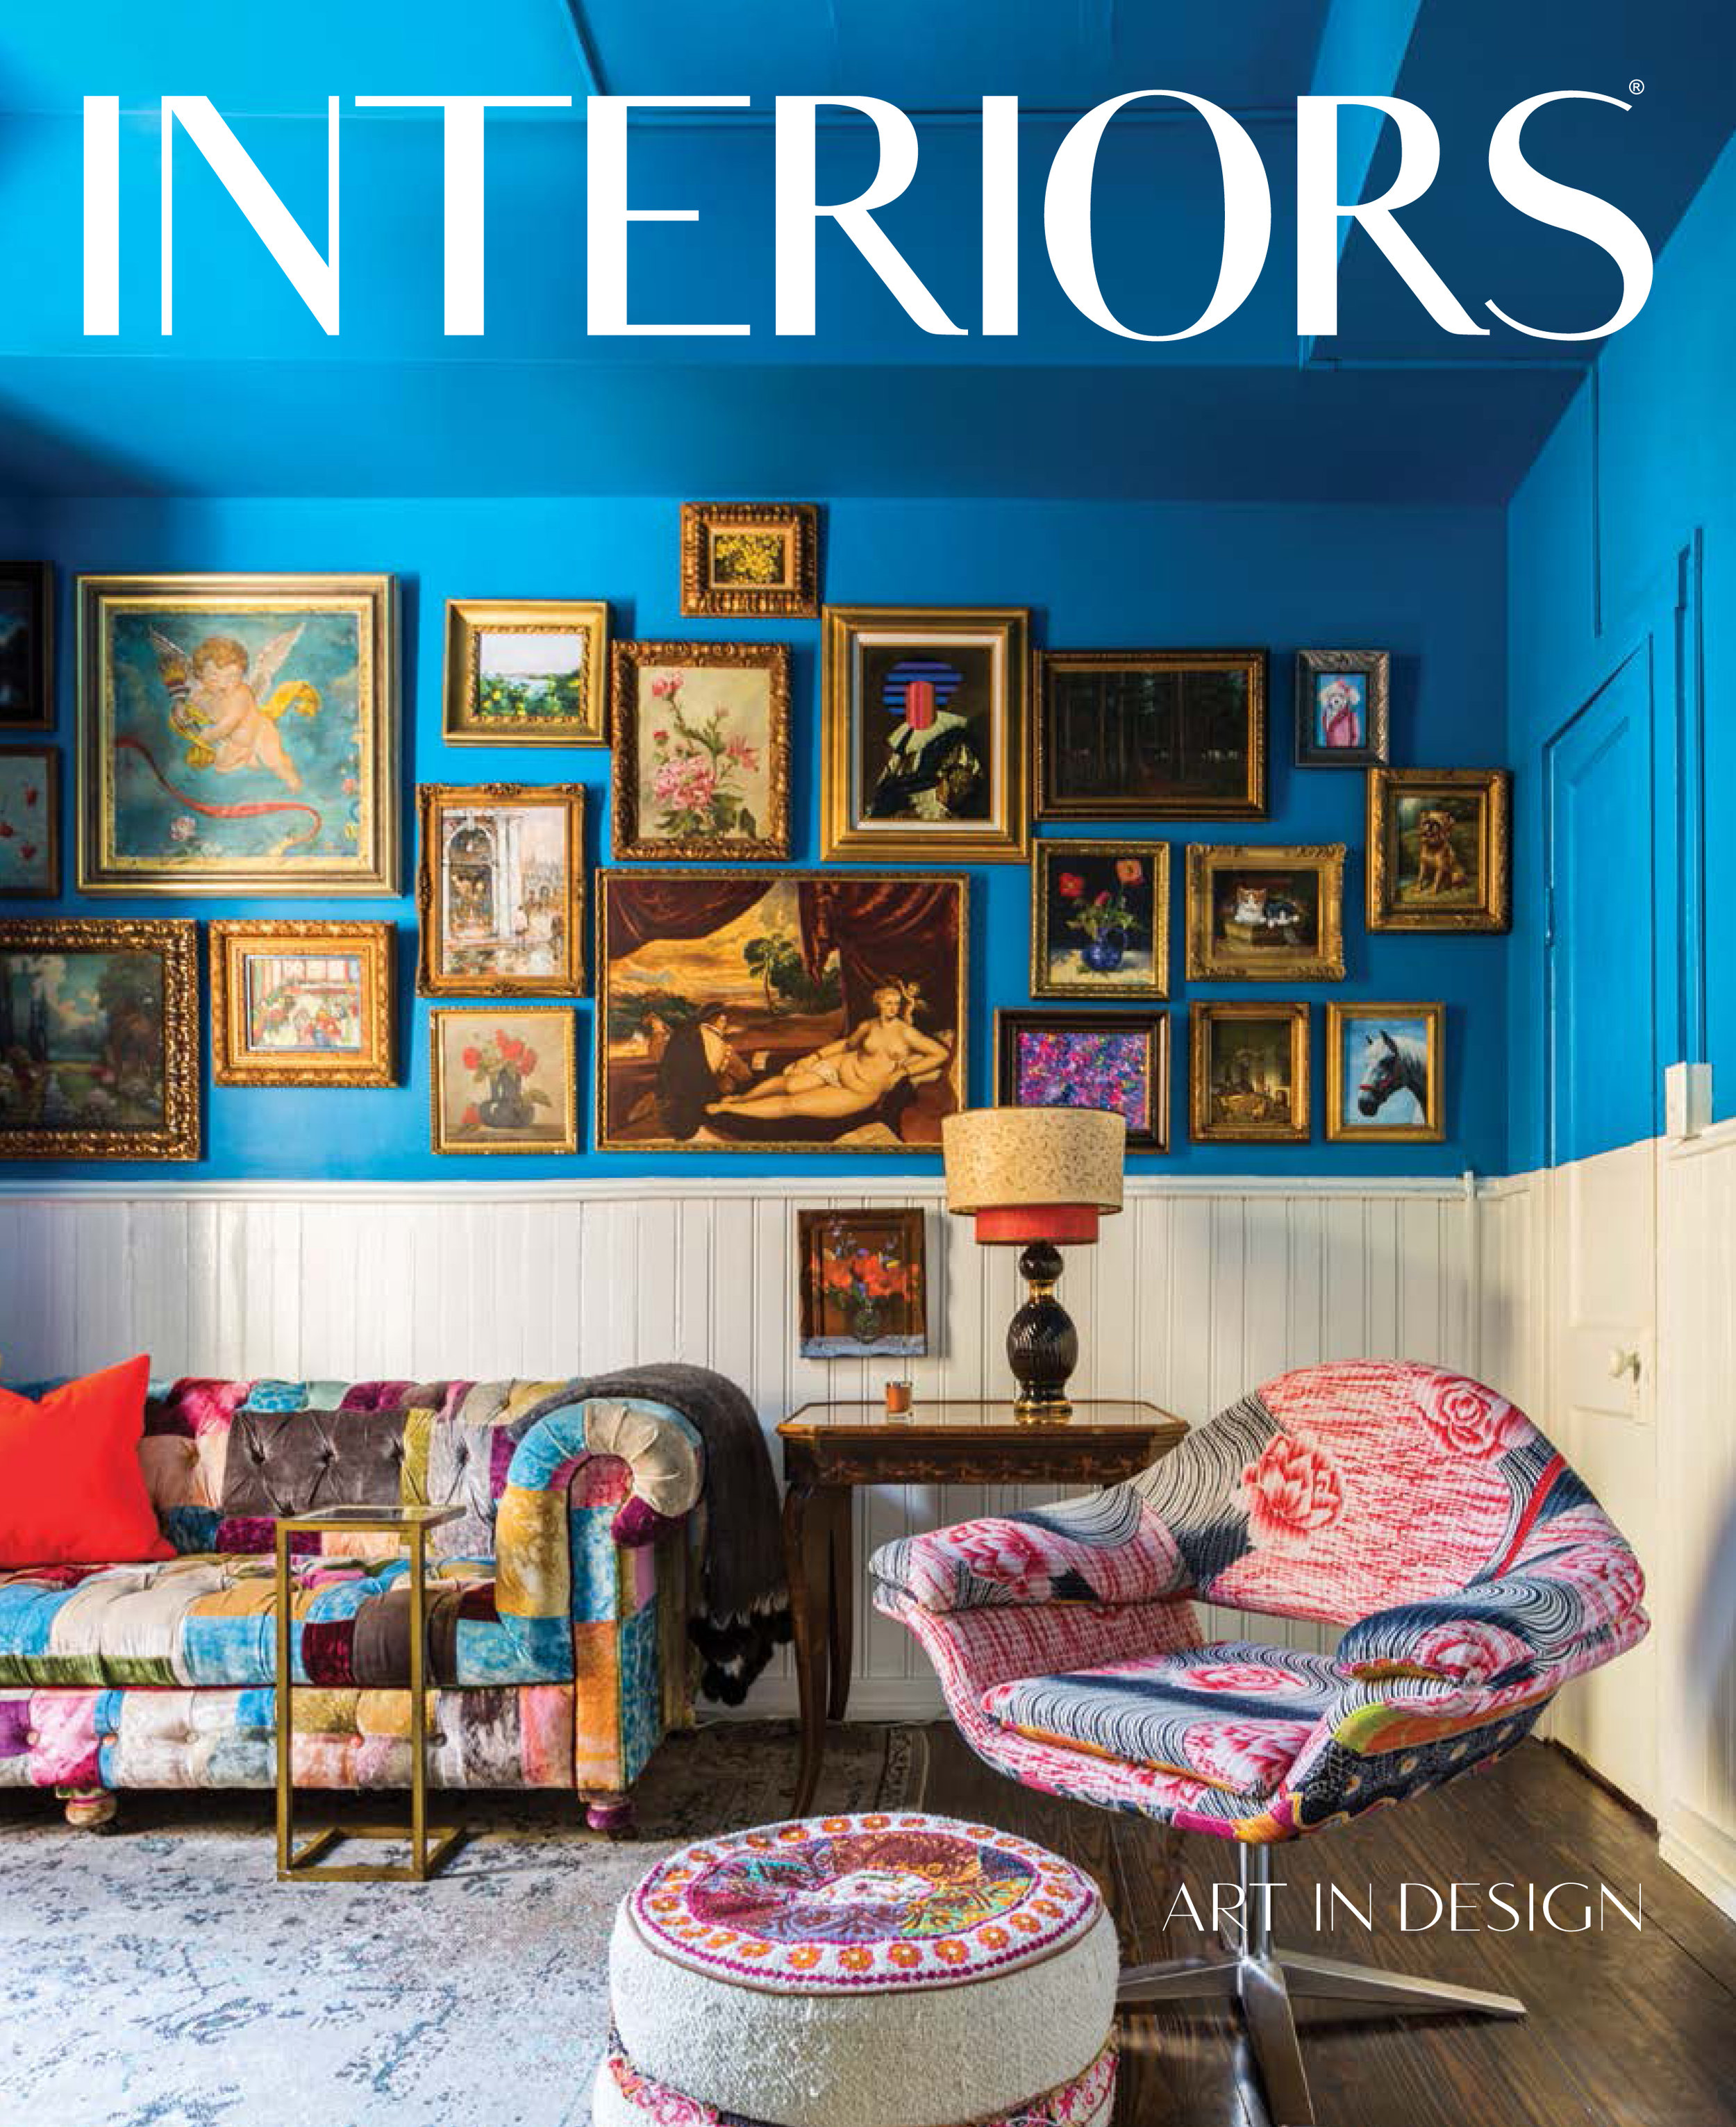 Interiors+Sept+Oct+DOMANI-1.jpg